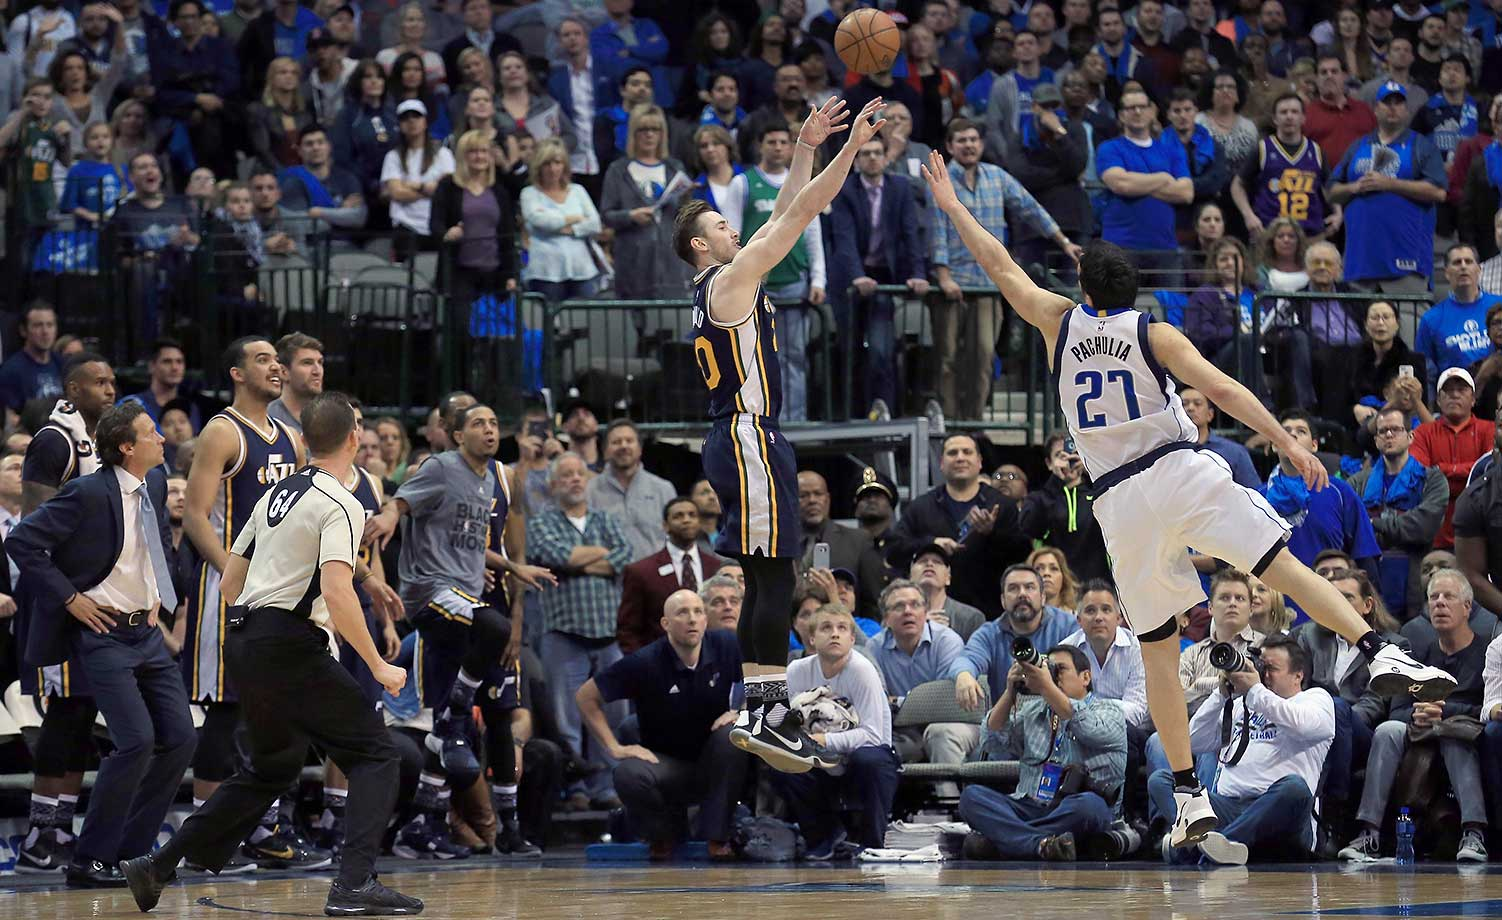 Gordon Hayward of the Utah Jazz shoots the game-winning basket against Zaza Pachulia of the Dallas Mavericks in overtime.